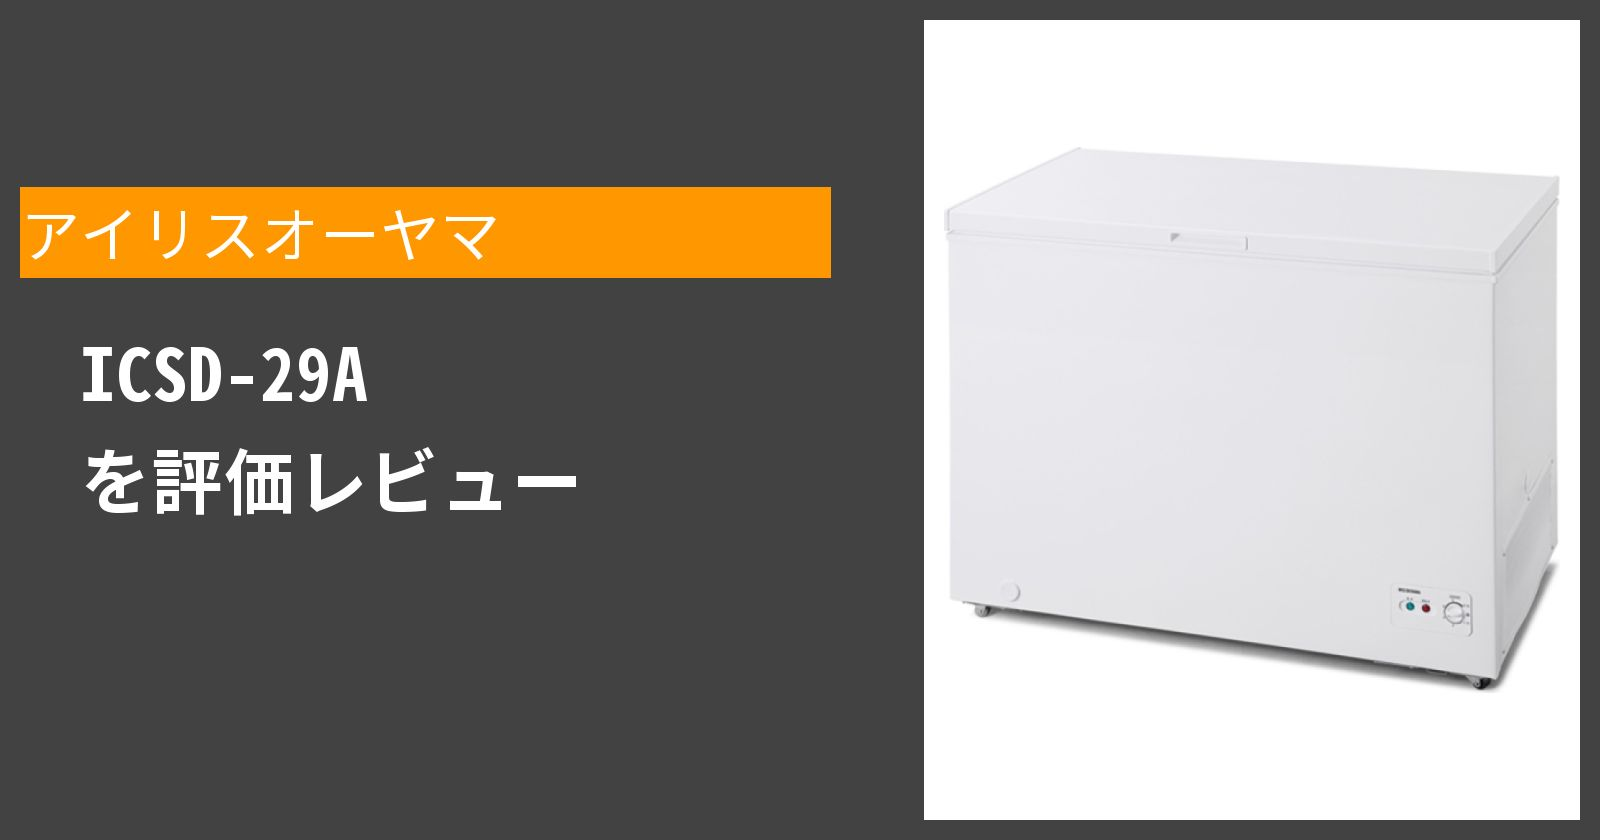 ICSD-29Aを徹底評価